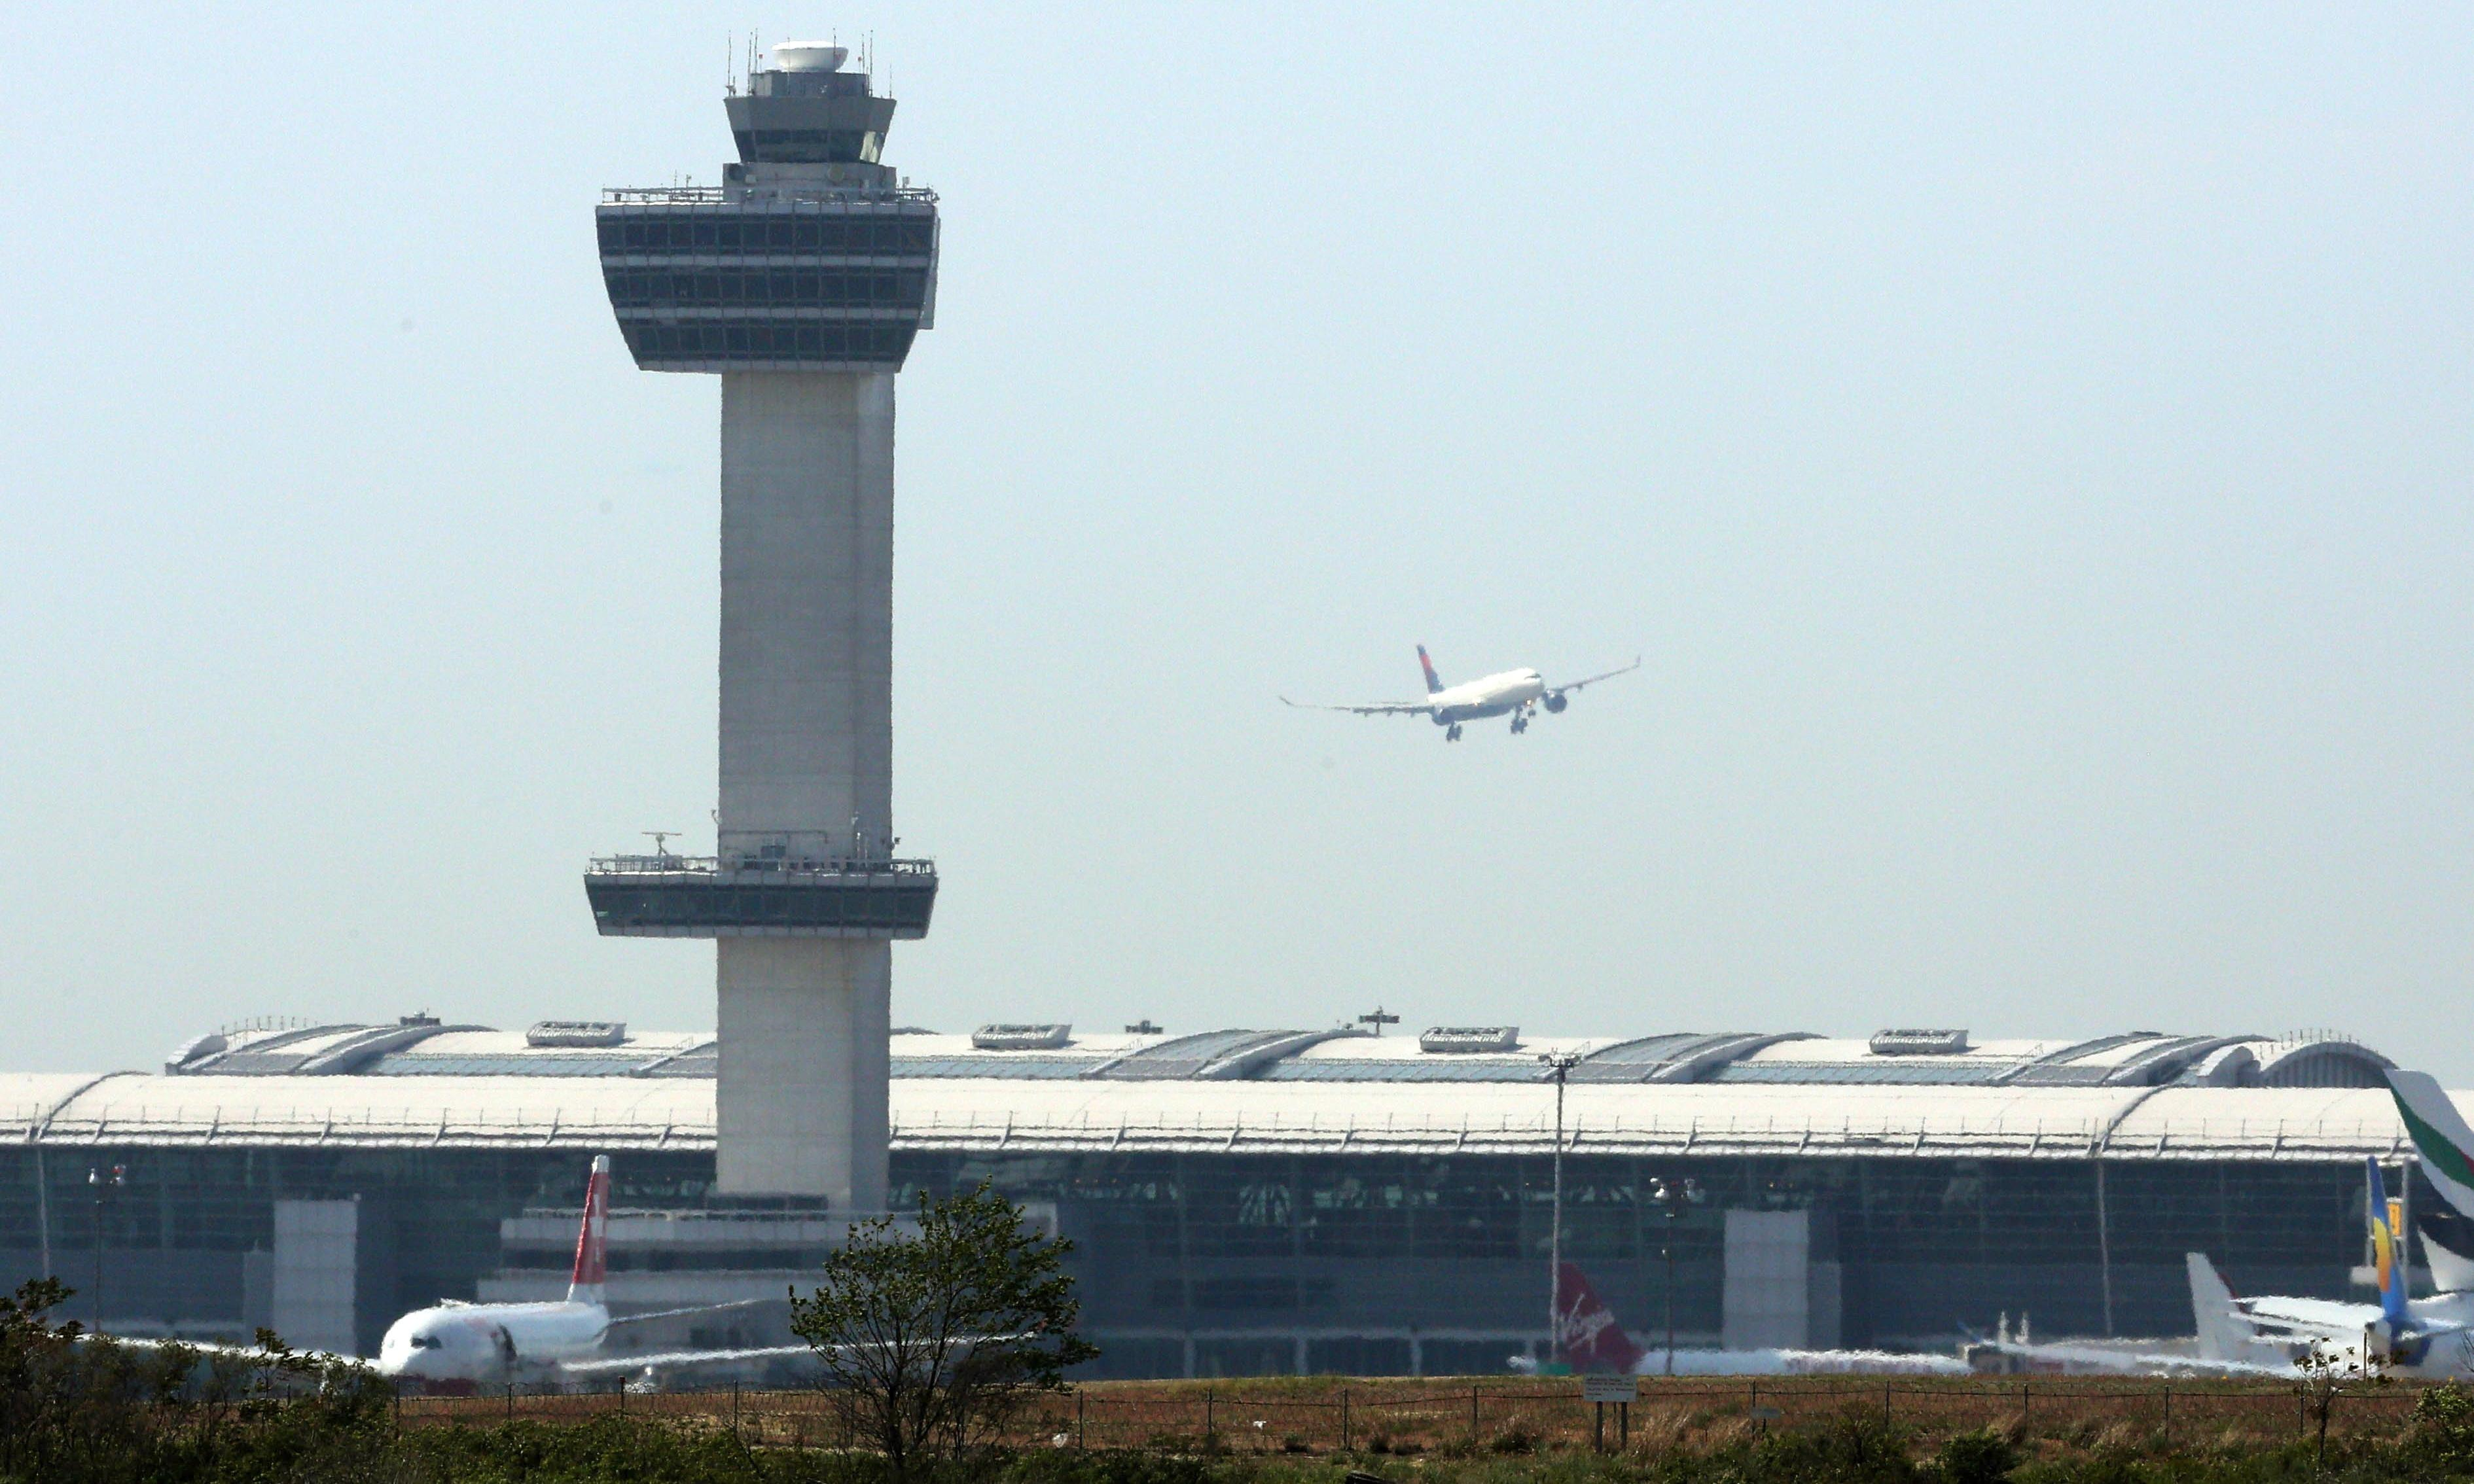 Air traffic controllers' union issues dire safety warning over shutdown